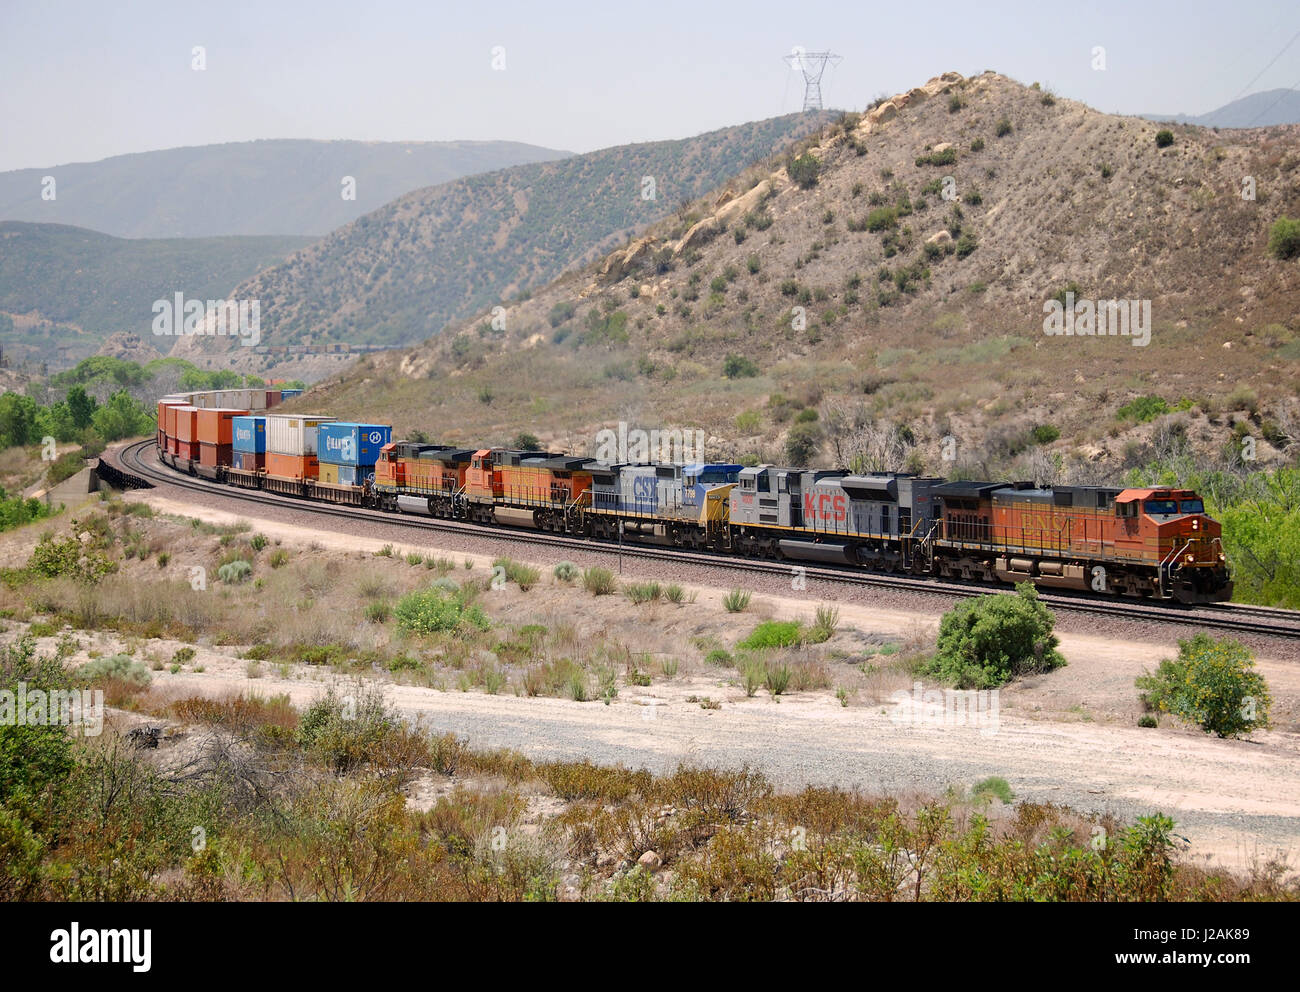 Freight train at Cajon Pass, San Bernardino County